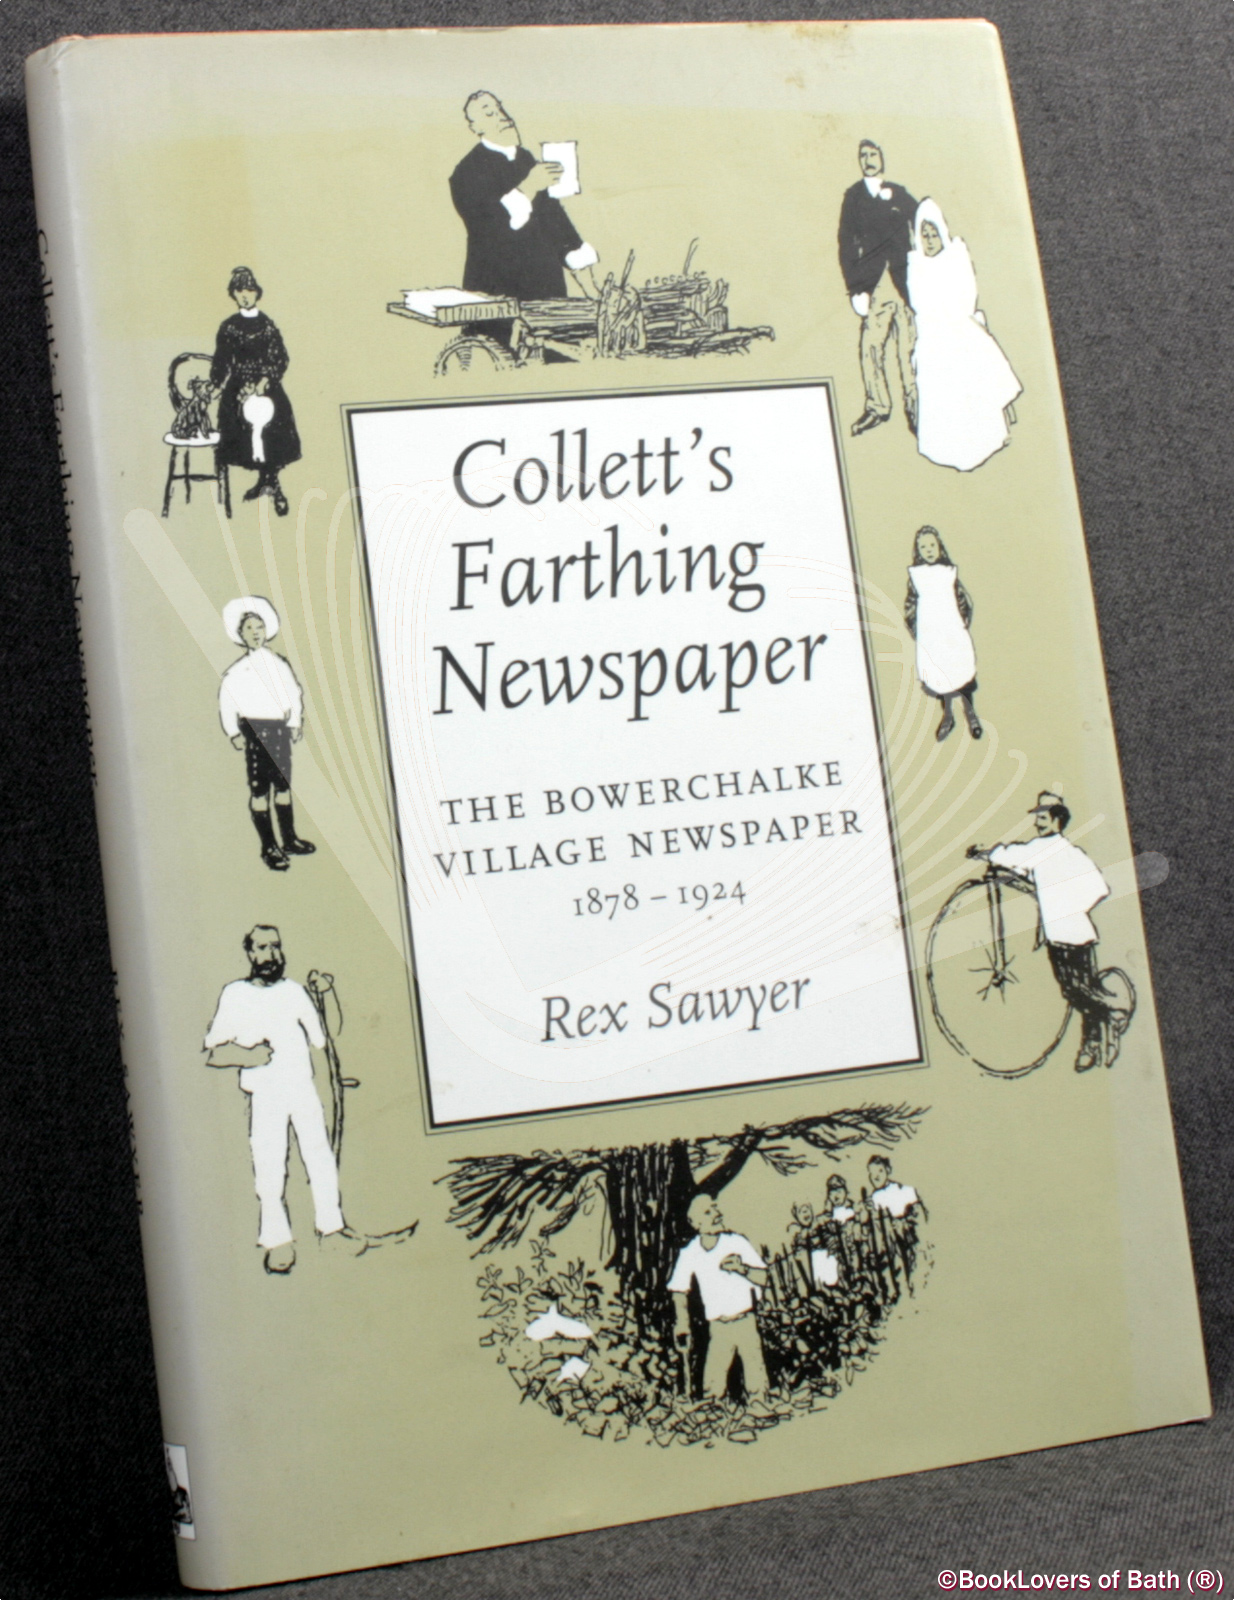 "Collett's Farthing Newspaper: The Bowerchalke Village Newspaper 1878-1924 FROM THE COVER: ""THIS Is THE STORY - Rex Sawyer"